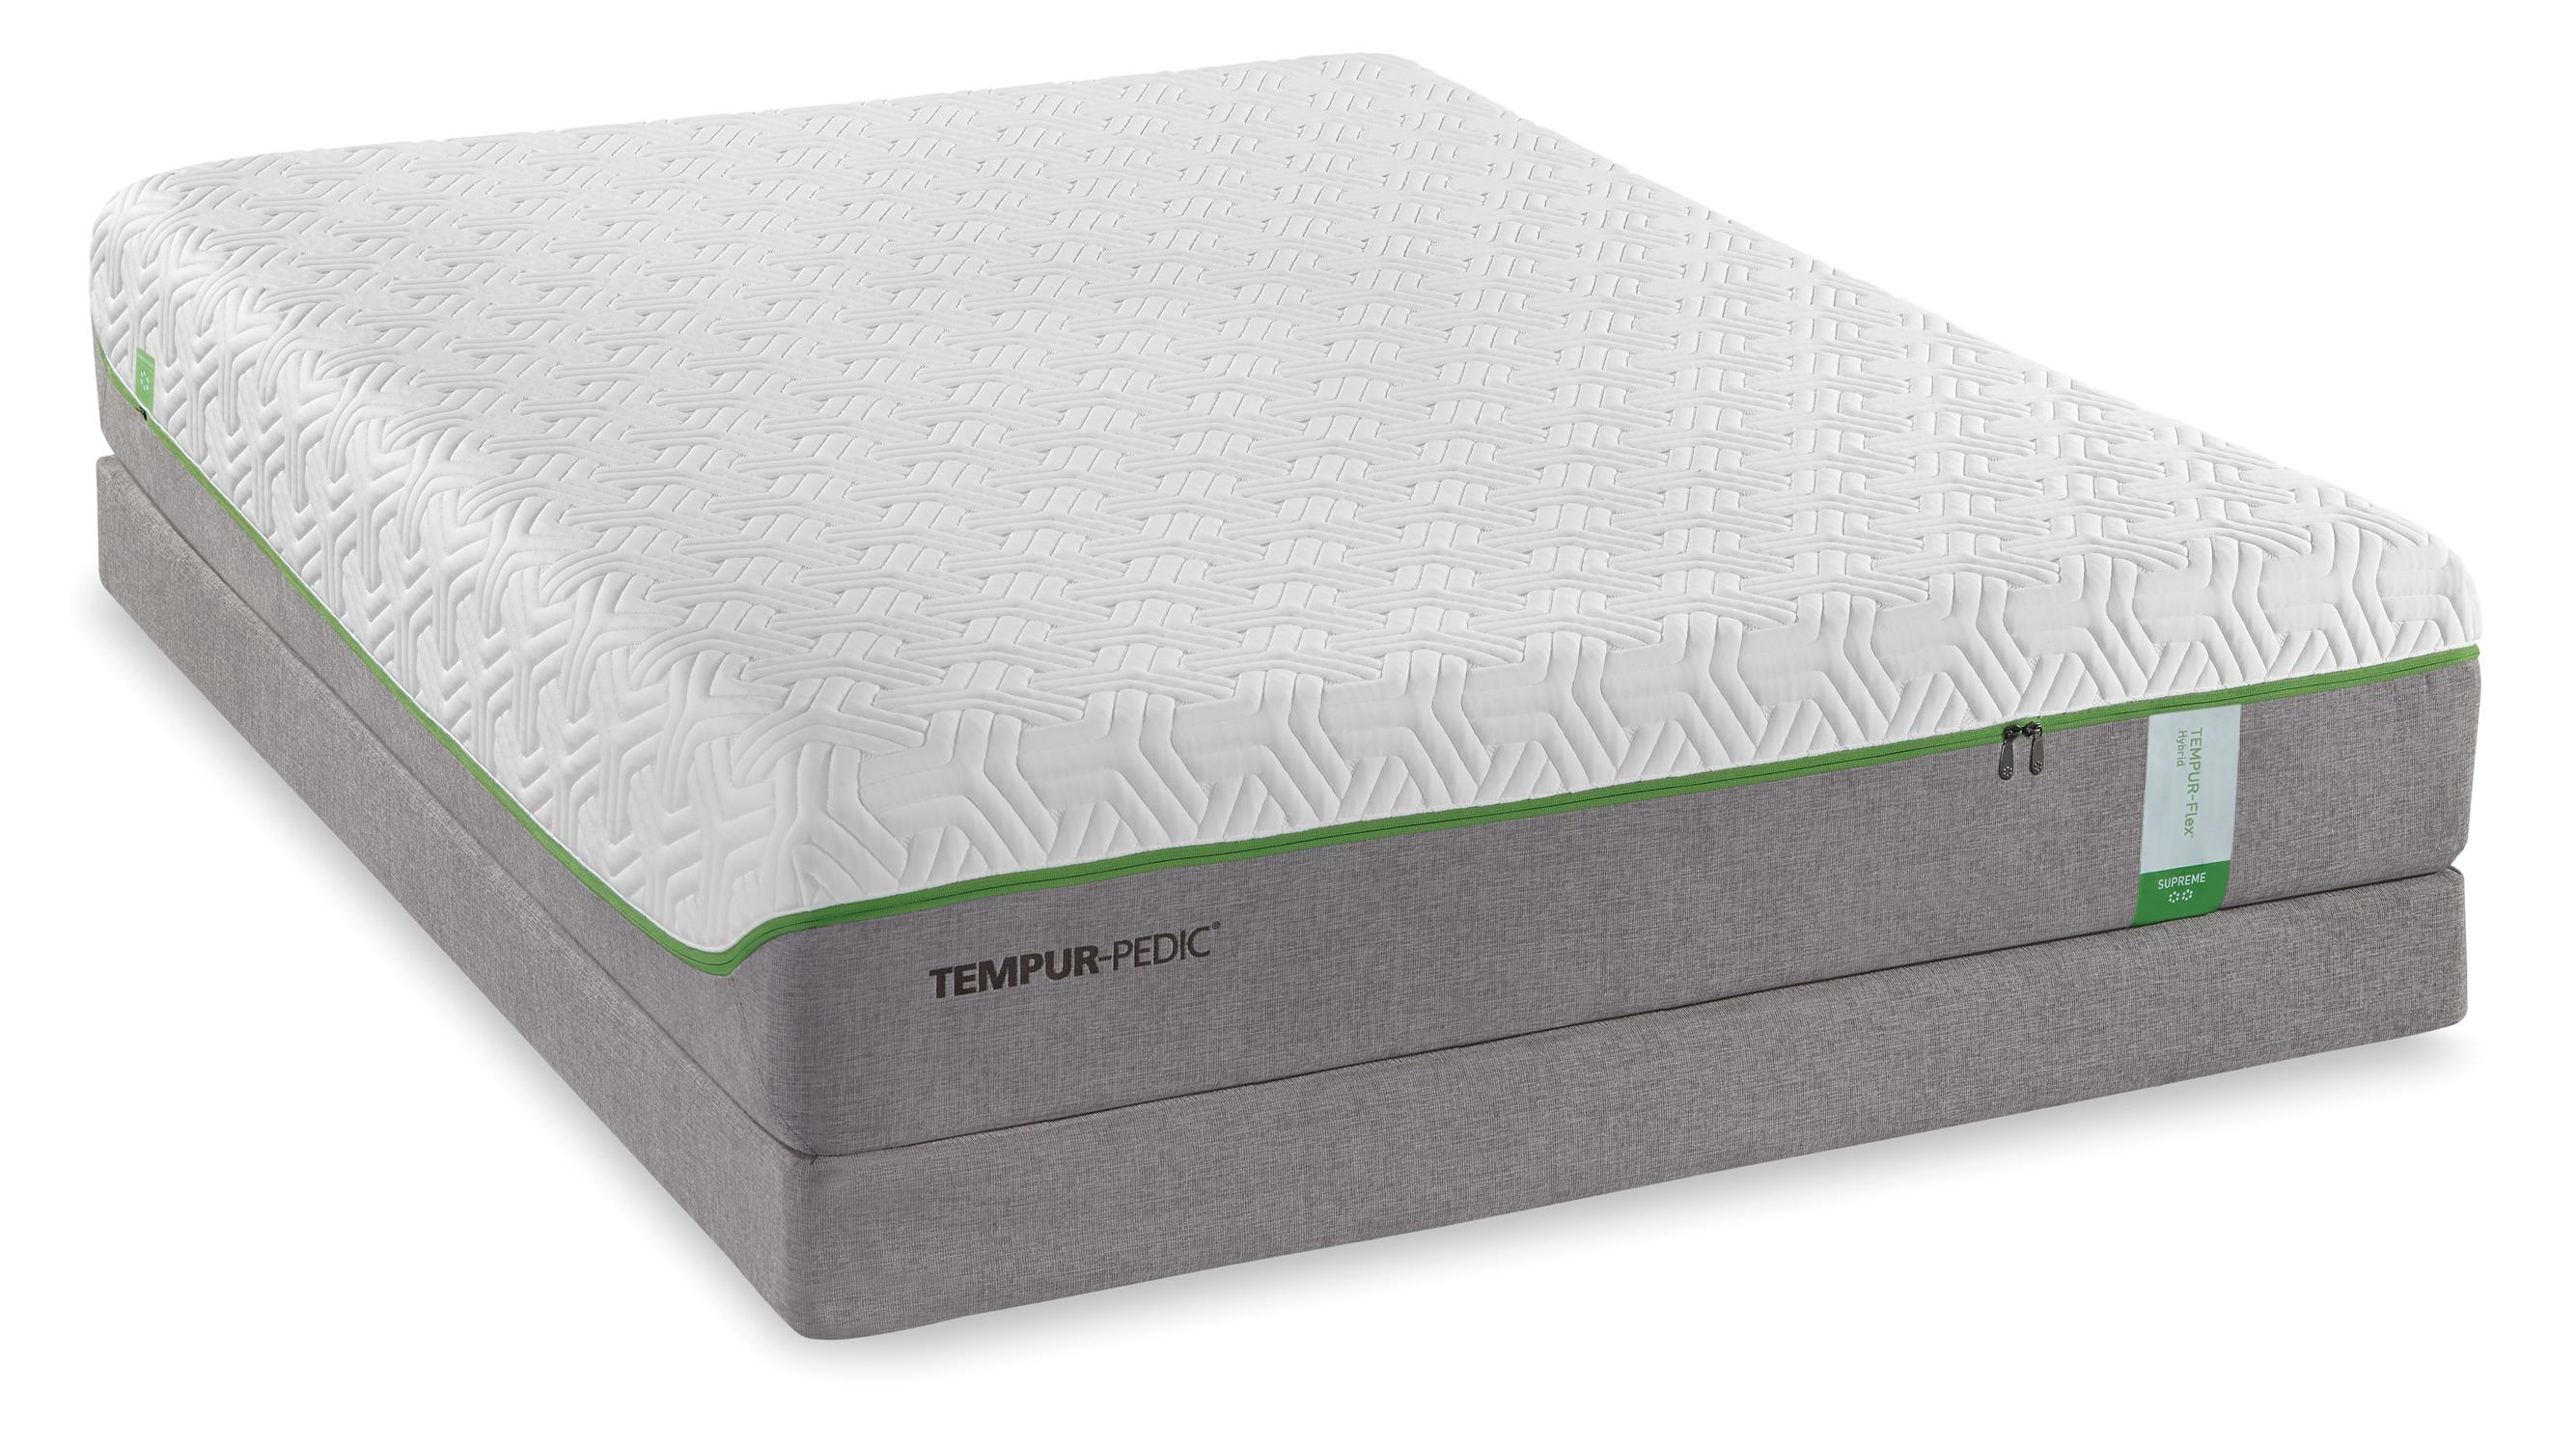 Tempur-Pedic® TEMPUR-Flex Supreme Full Medium Plush Mattress Set - Item Number: 10116130+21510130